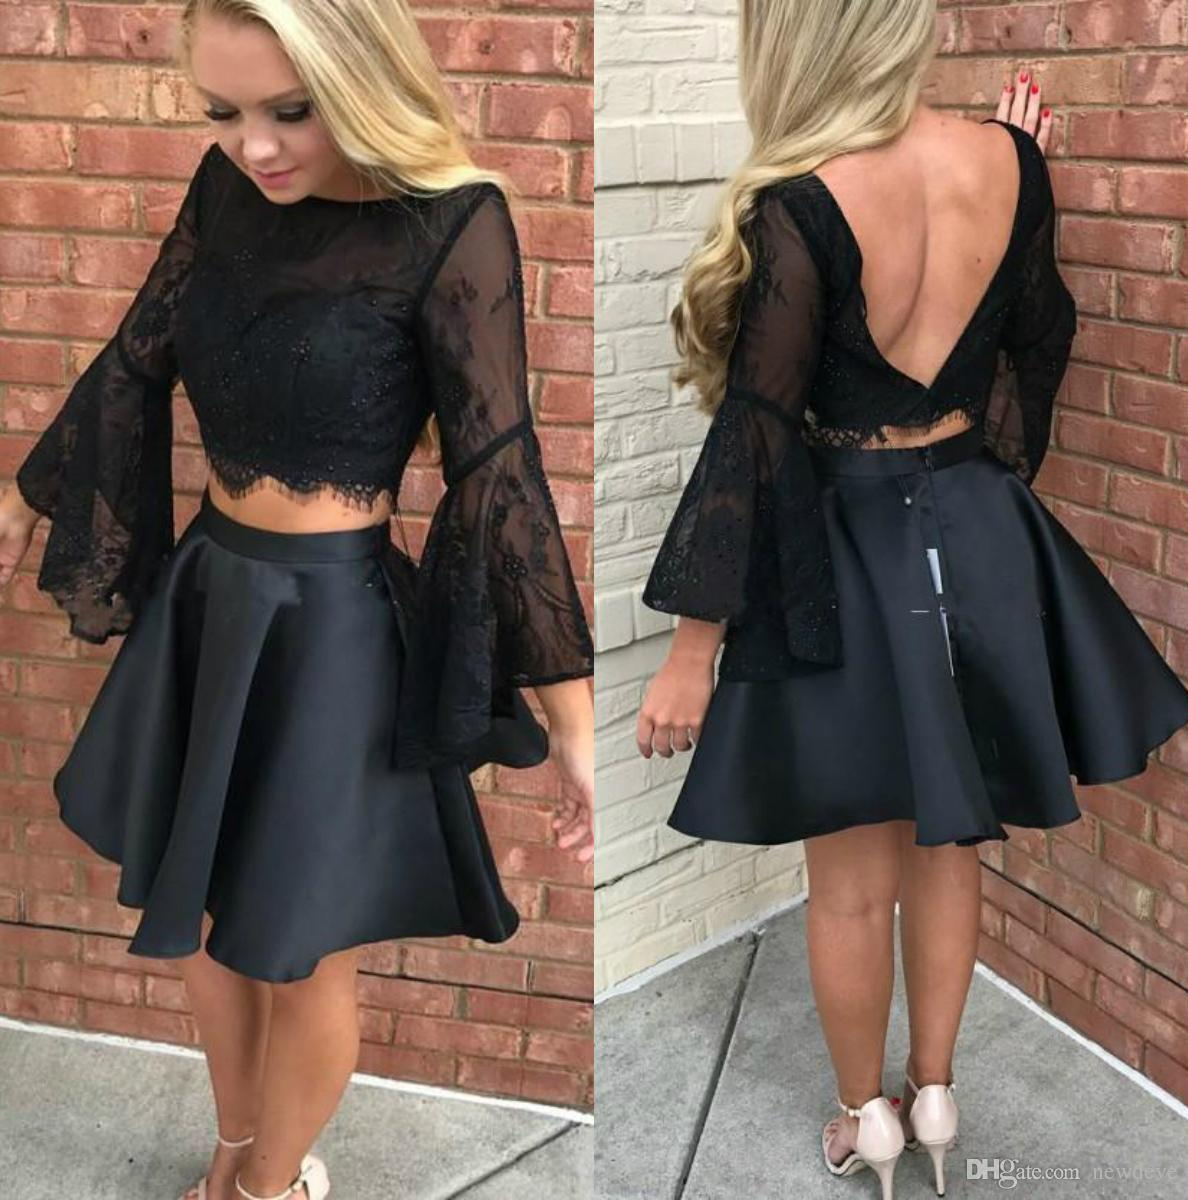 4ca62df8e3 Little Black Party Evening Dress Two Piece Sheer Lace Homecoming Dress  Short Prom With 3 4 Sleeve Backless A Line Formal Party Gowns Black  Homecoming ...